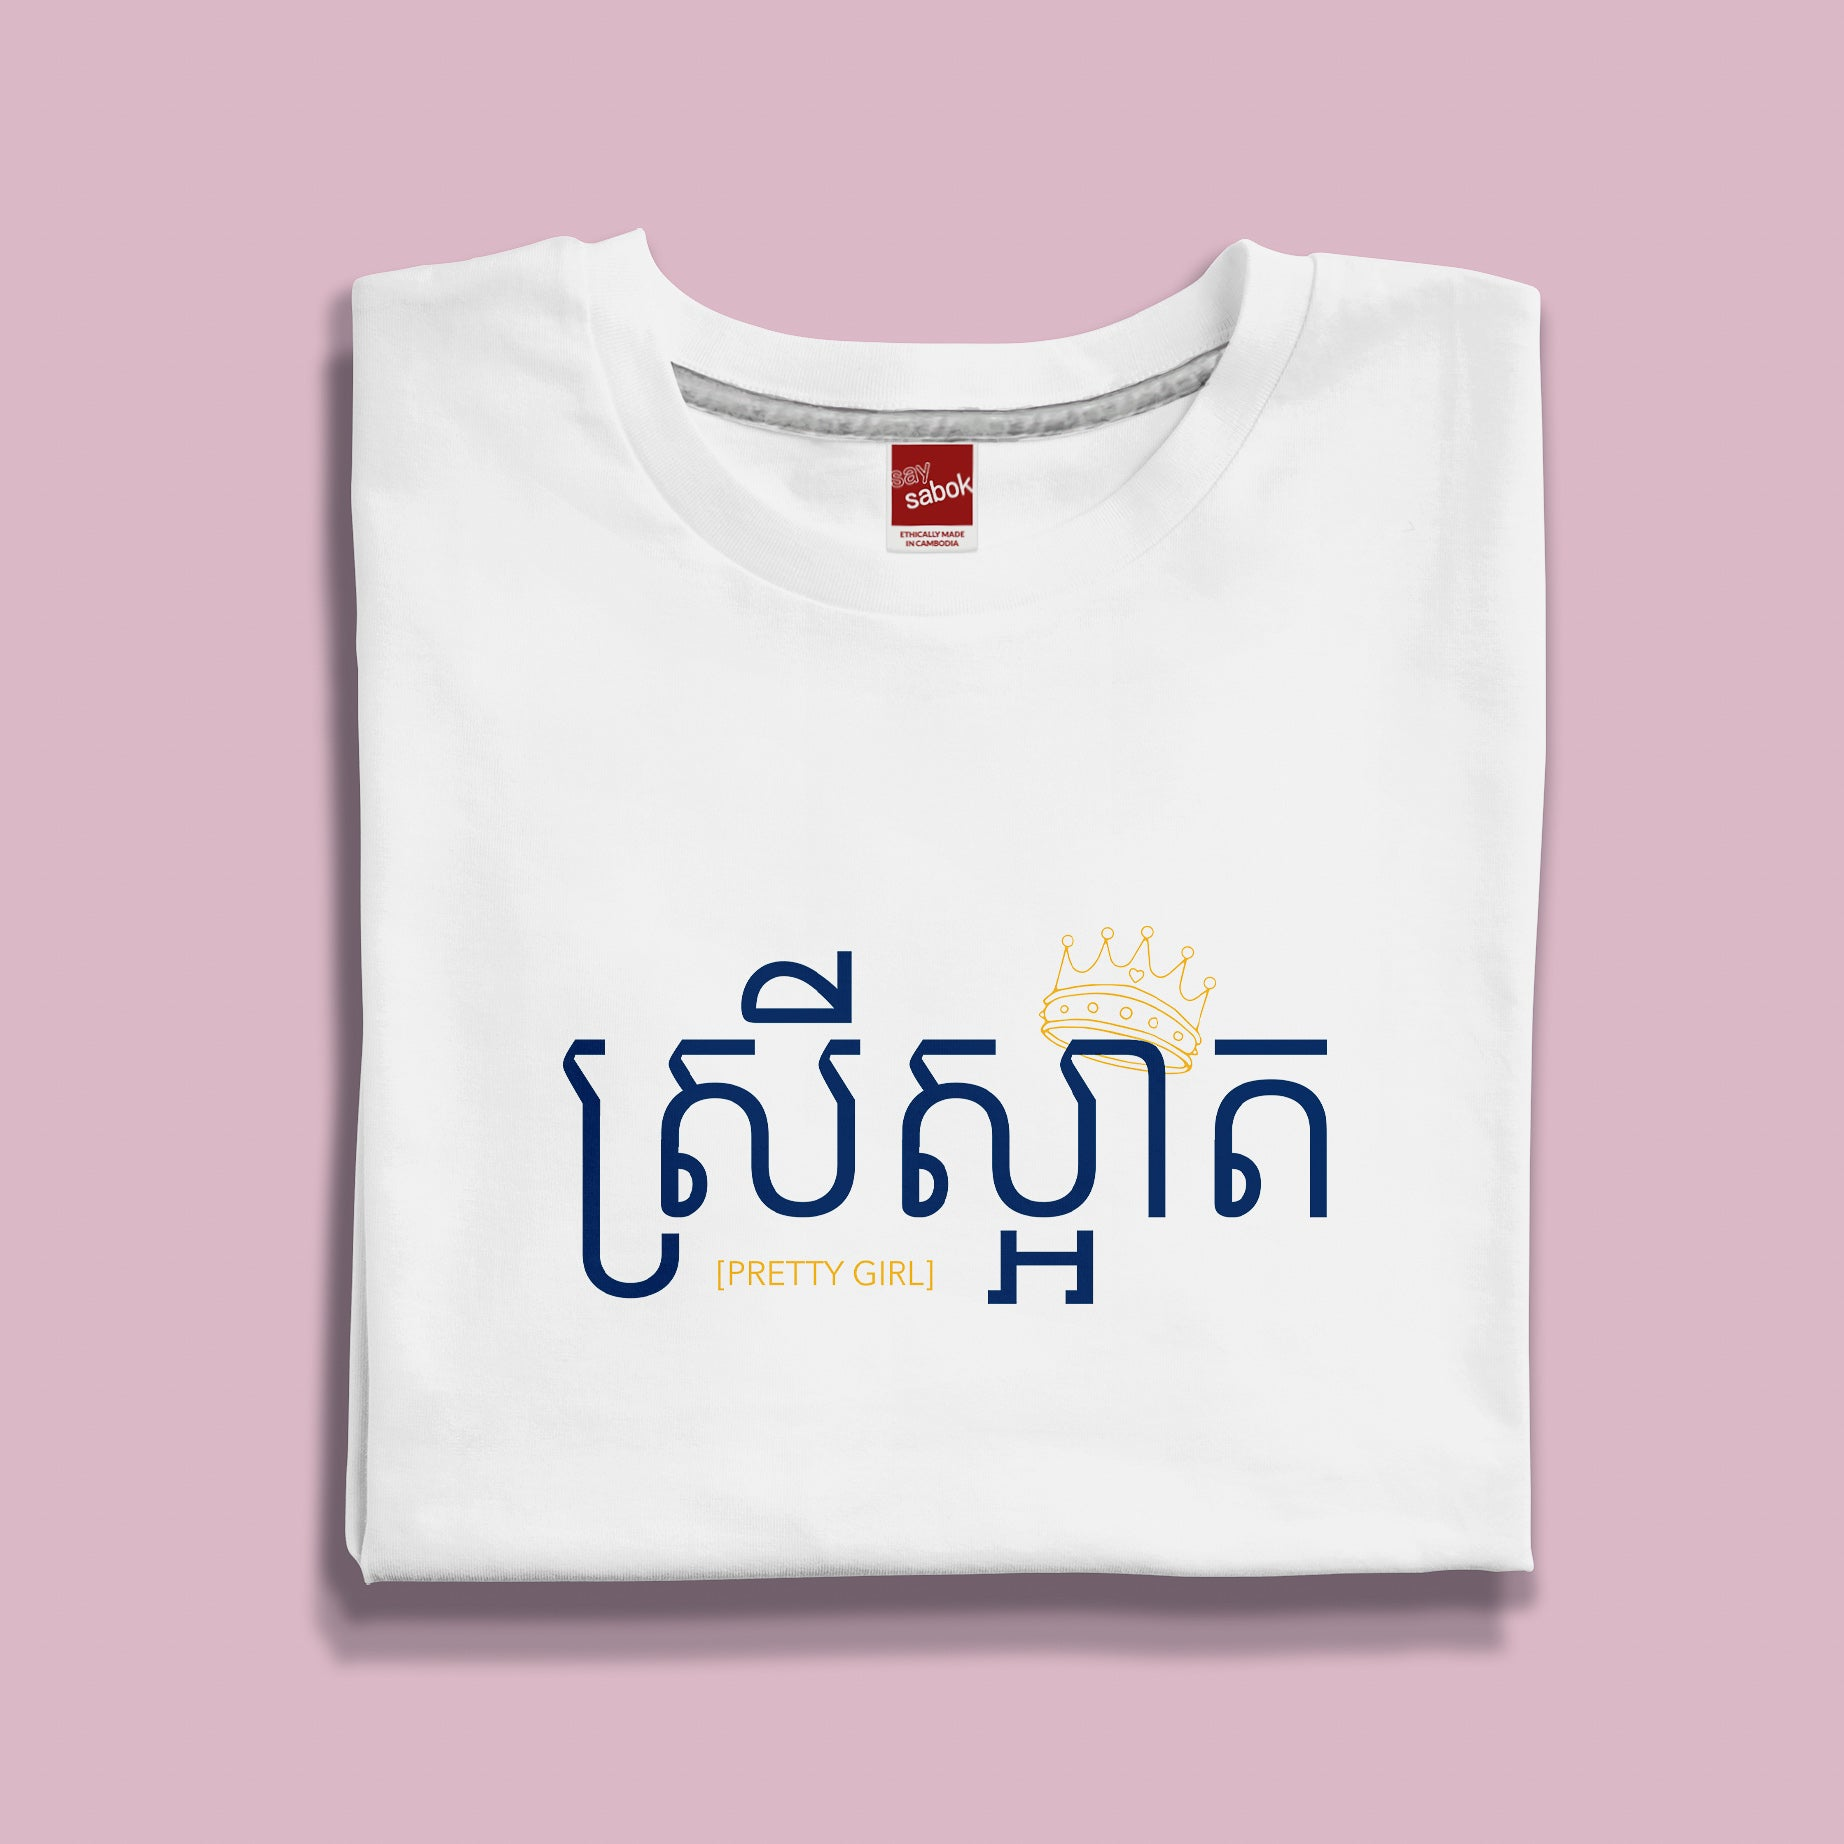 """Srey Saart / Pretty Girl"" Women's T-Shirt - SATU"